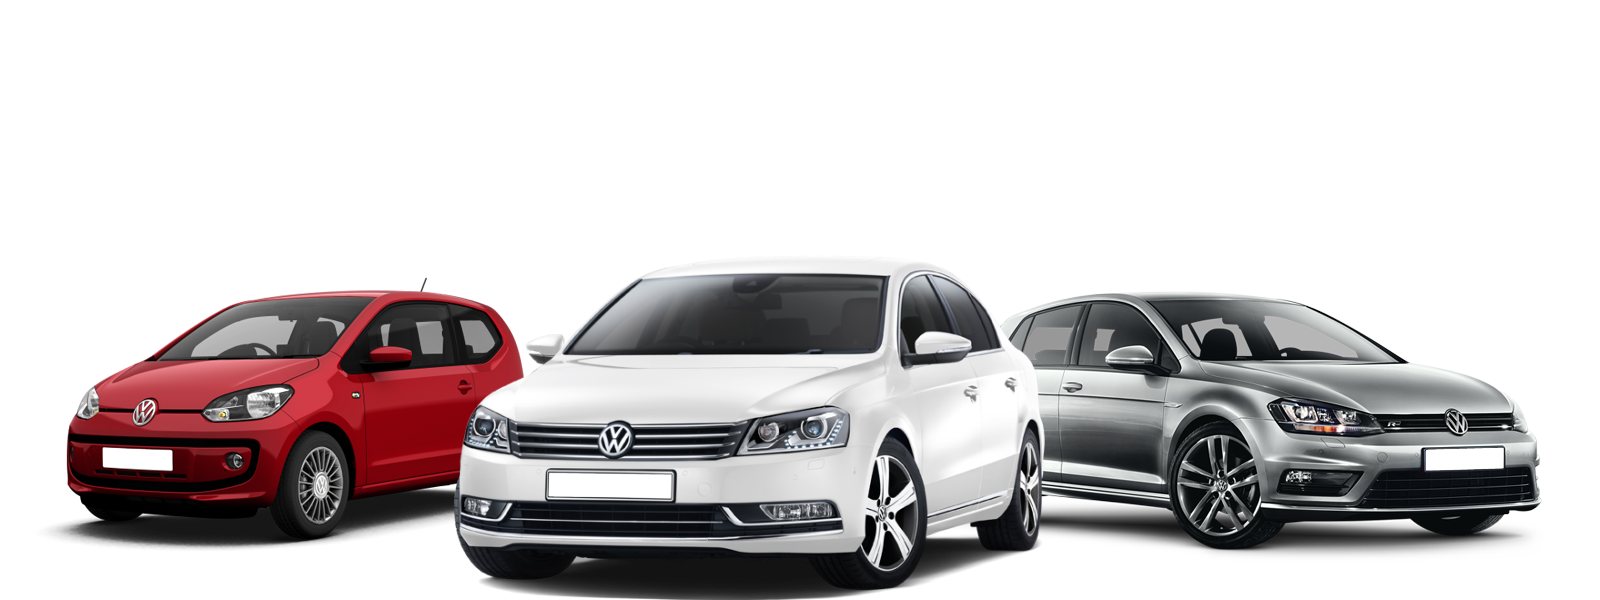 Where To Rent A Car >> Hazir Rent A Car Siteleri Medyaweb Hazir Web Site Tasarimlari